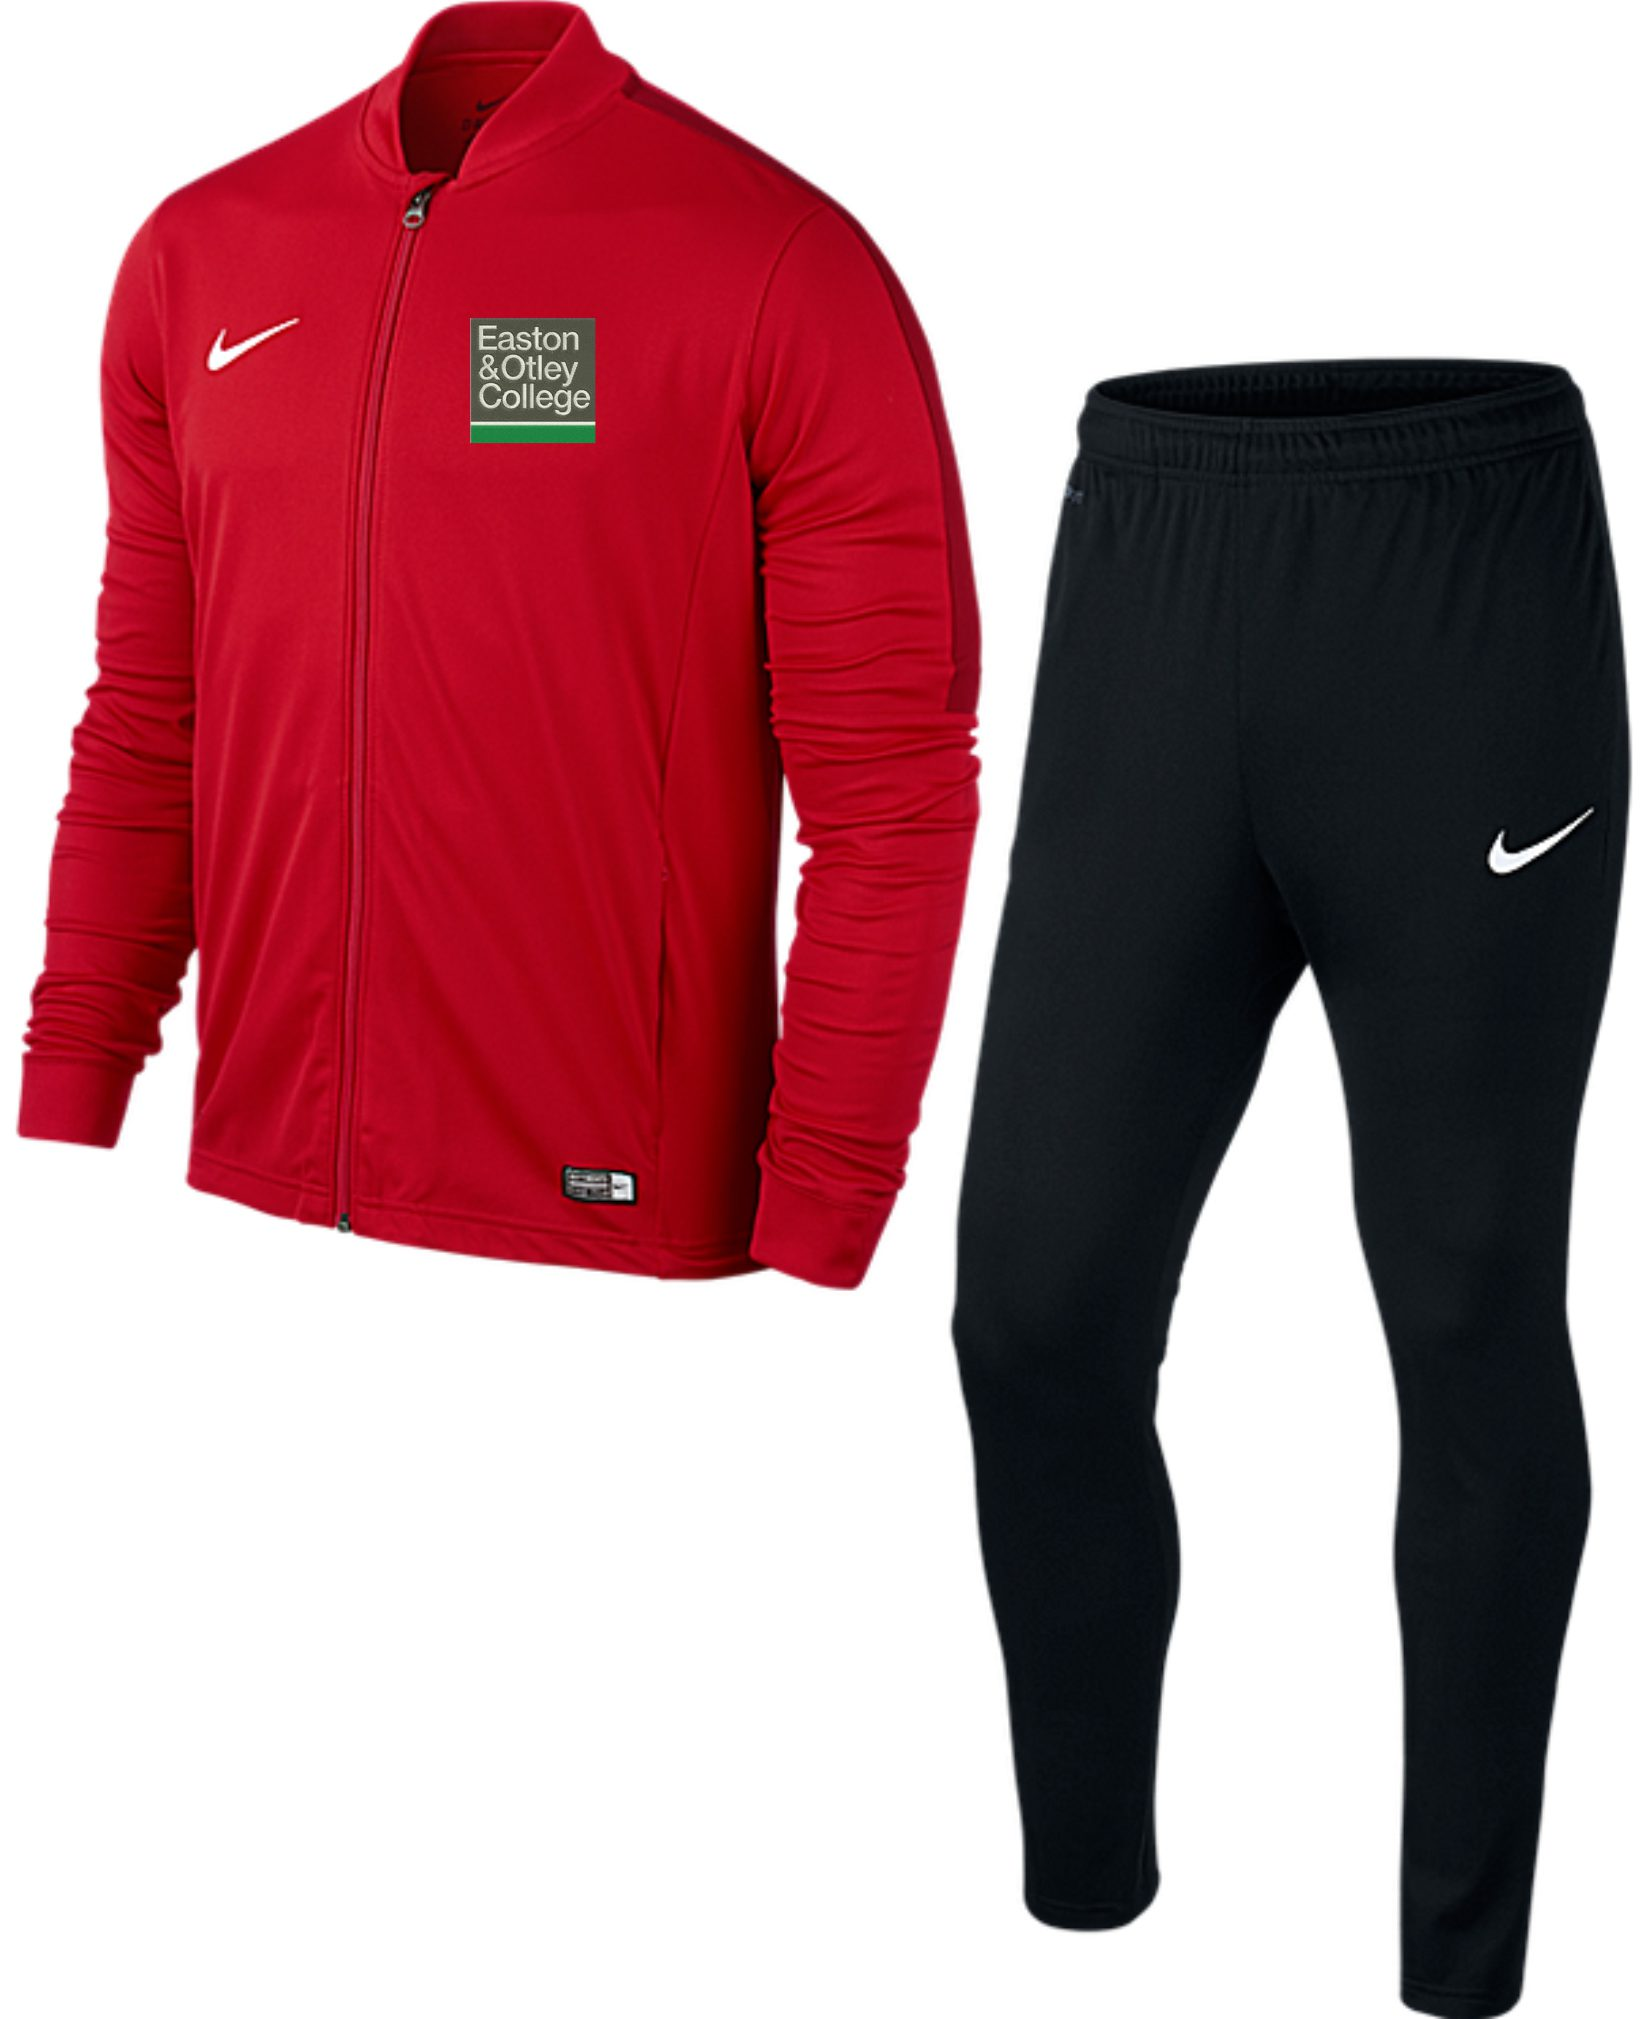 Easton College Staff Sport Academy Tracksuit